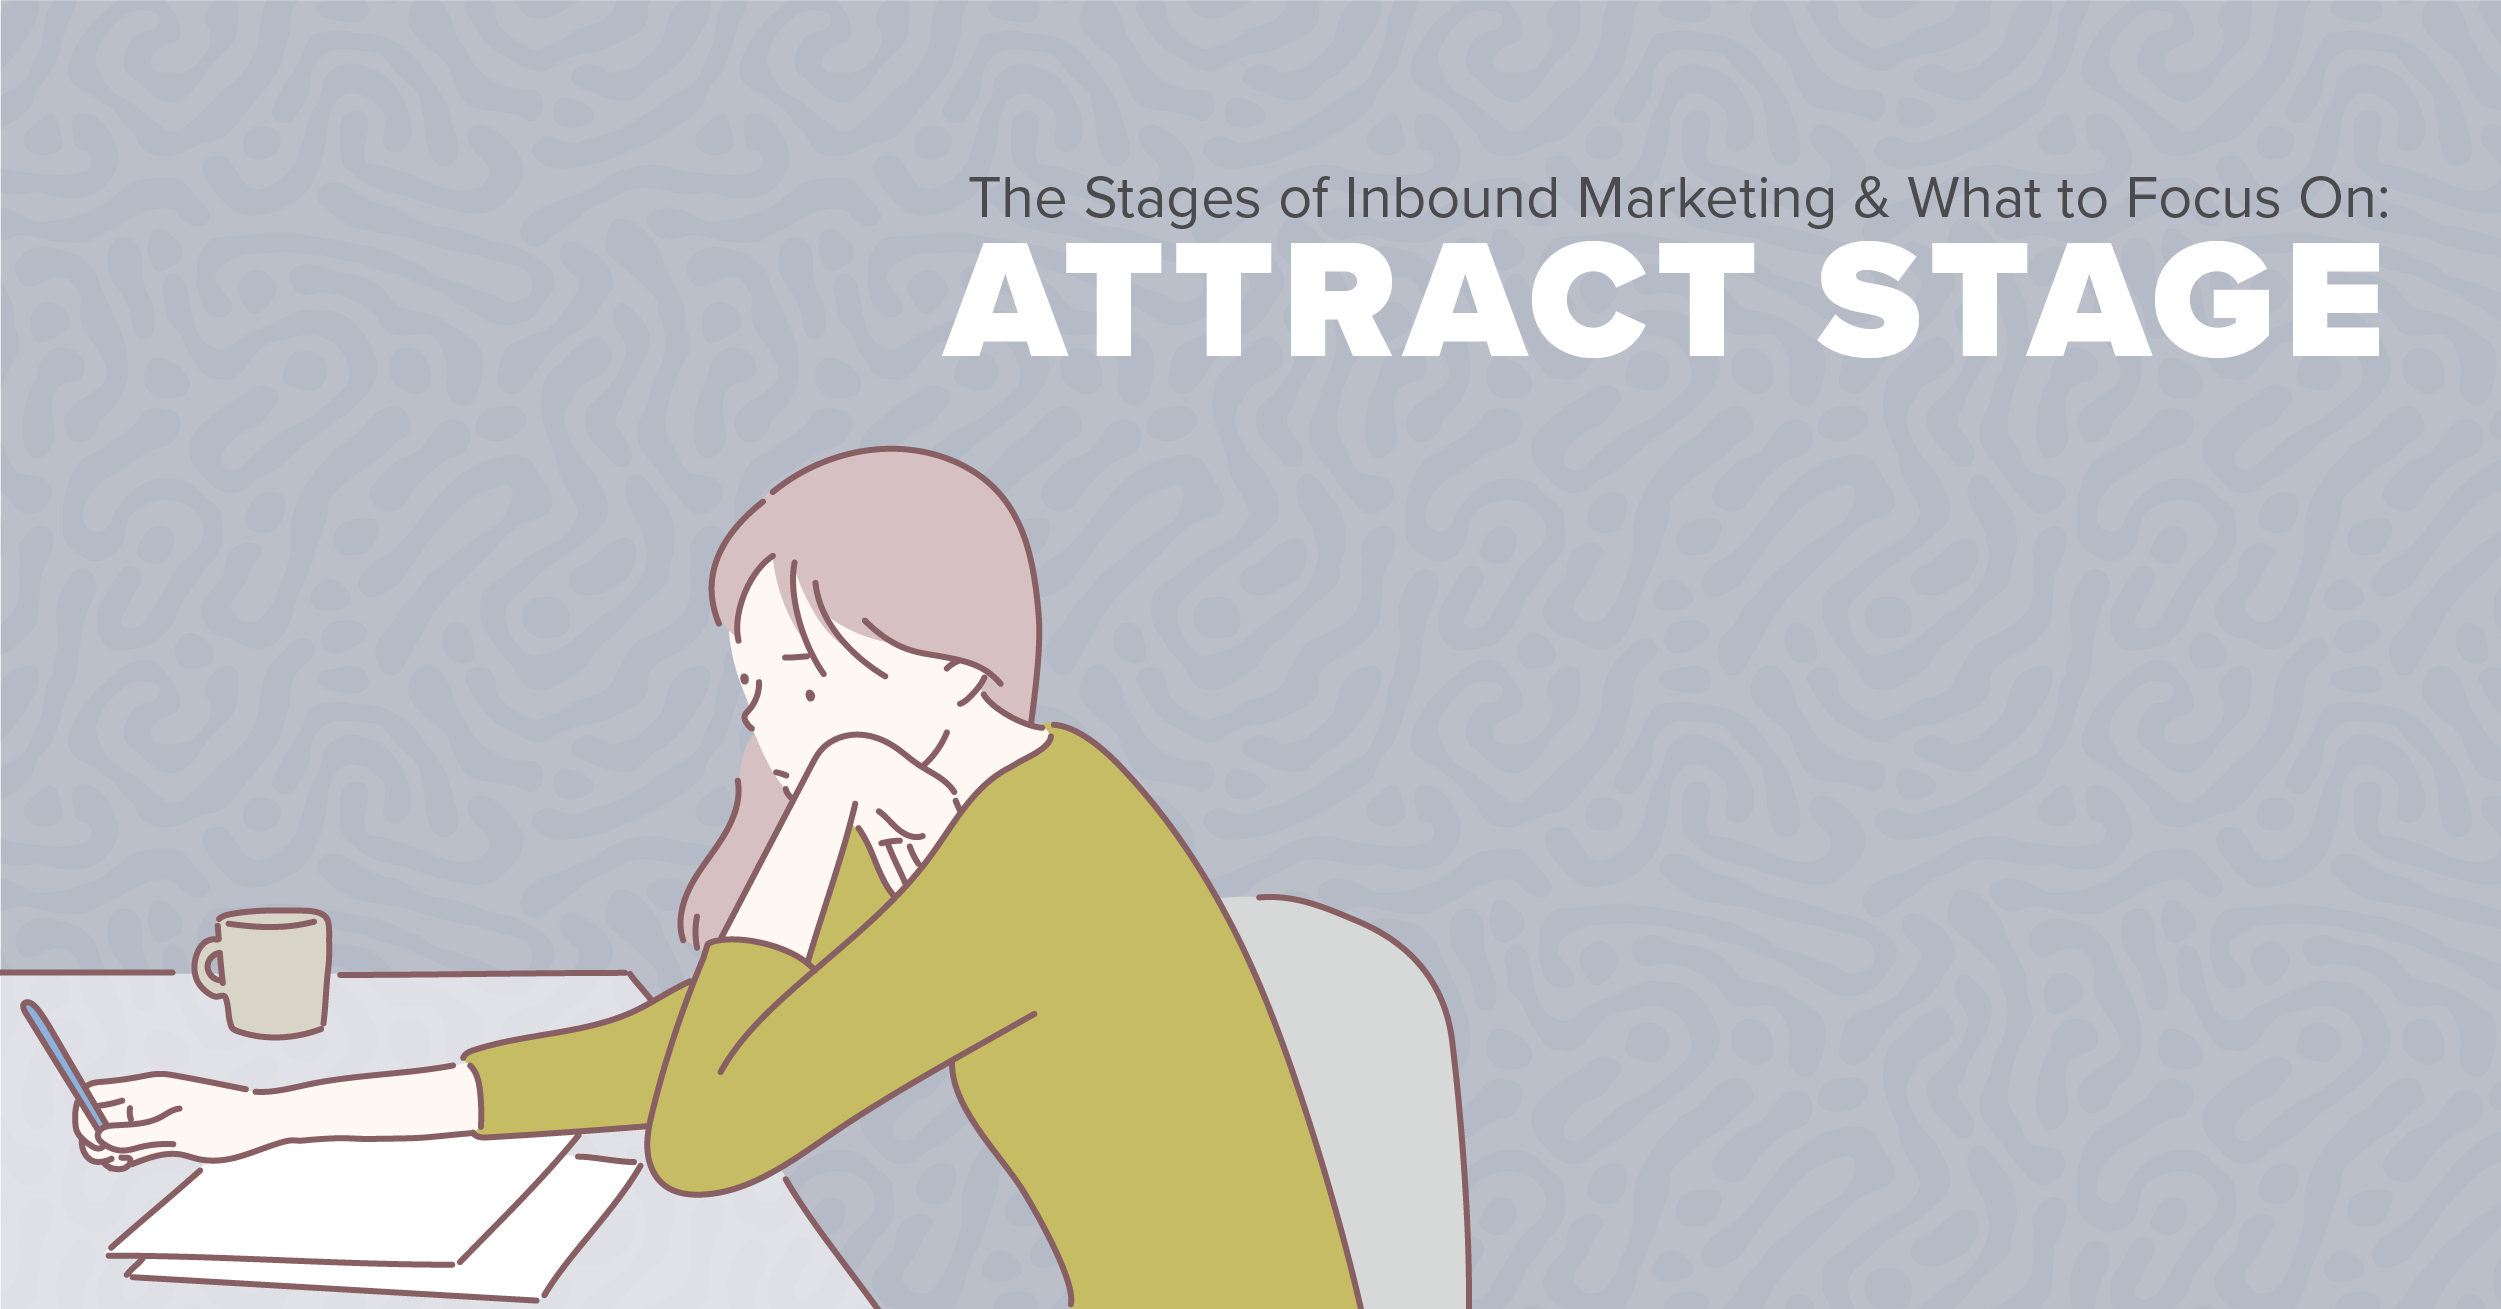 The Stages of Inbound Marketing and What to Focus On: Attract Stage